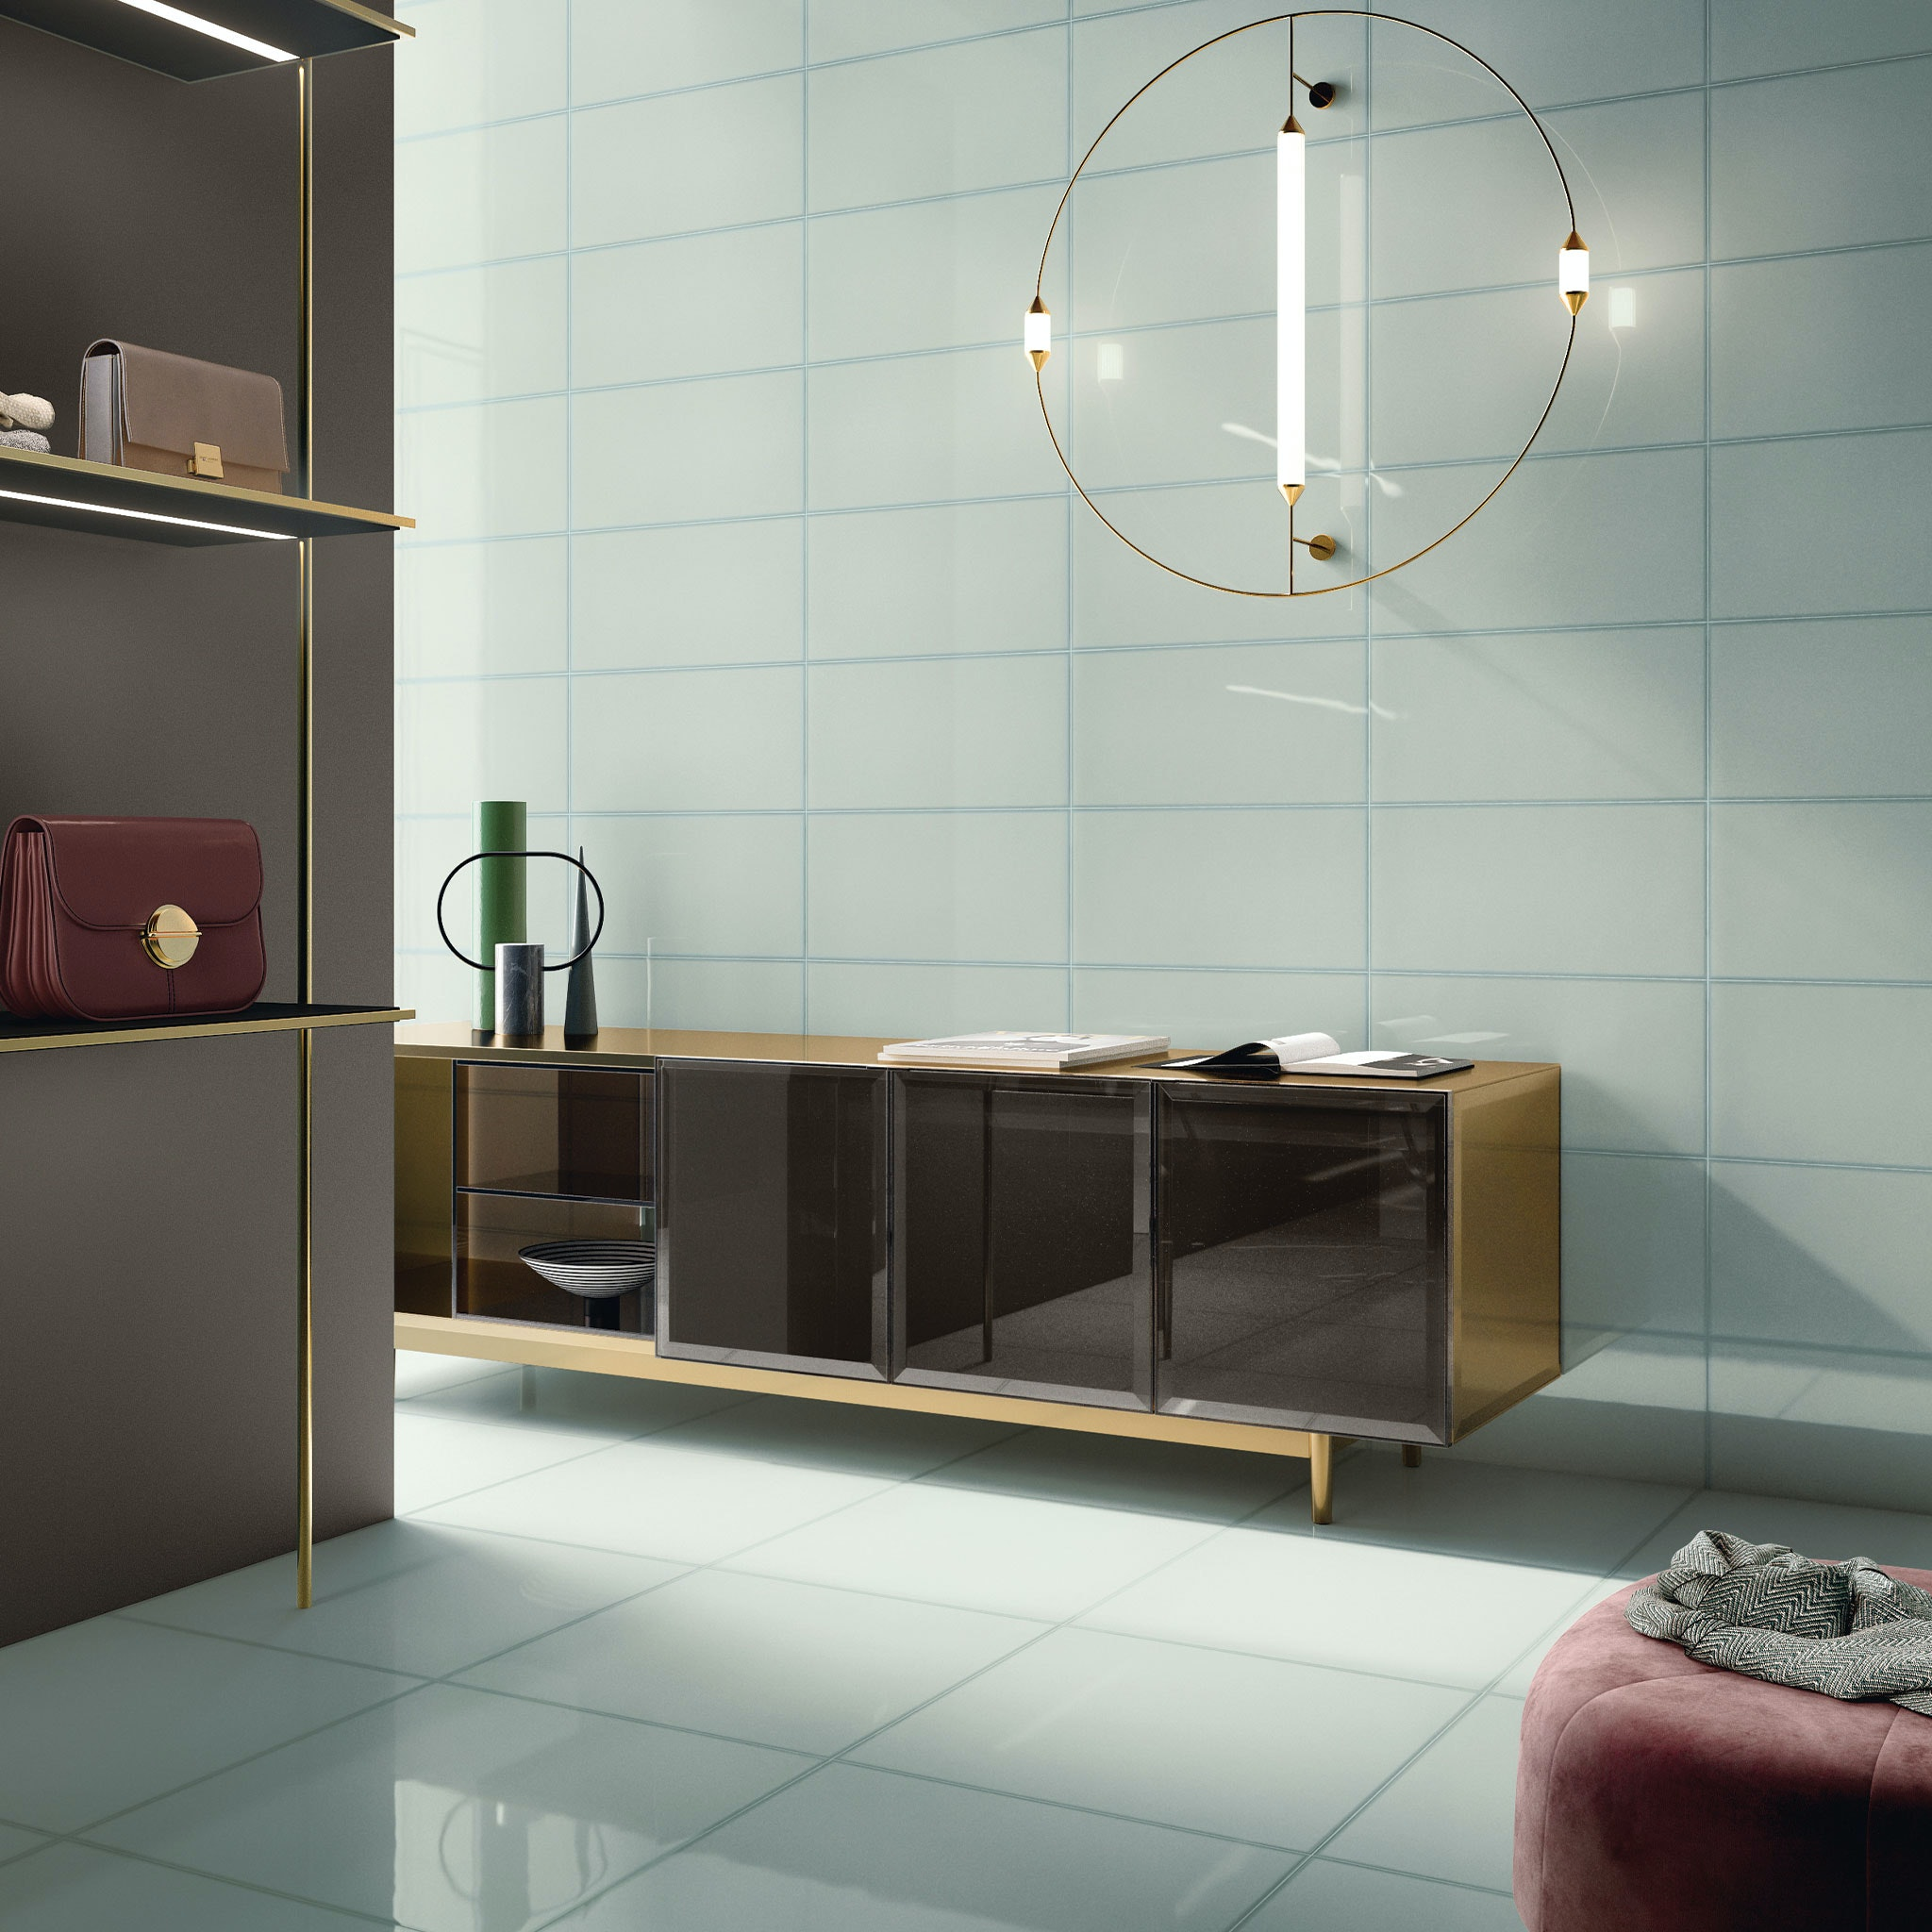 Glass-look light aqua coloured tiles on the floor and walls. Featuring a gold console table by the wall and a round modern pendant above it. Handbags are displayed on the left and a glimpse of a velvet ottoman can be seen on the bottom right.